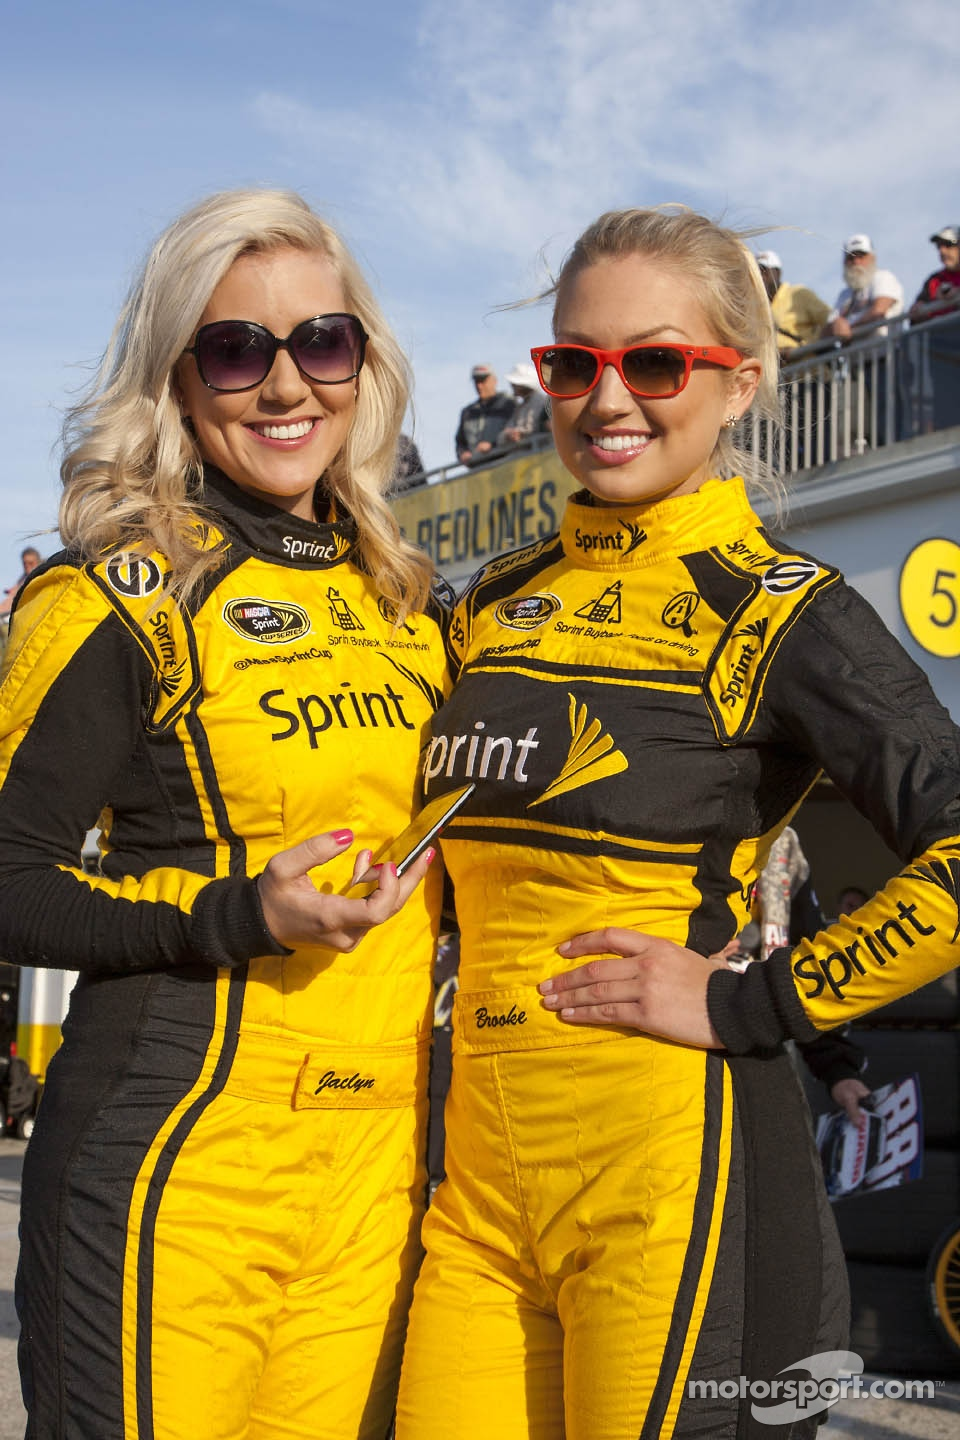 The lovely Miss Sprint girls